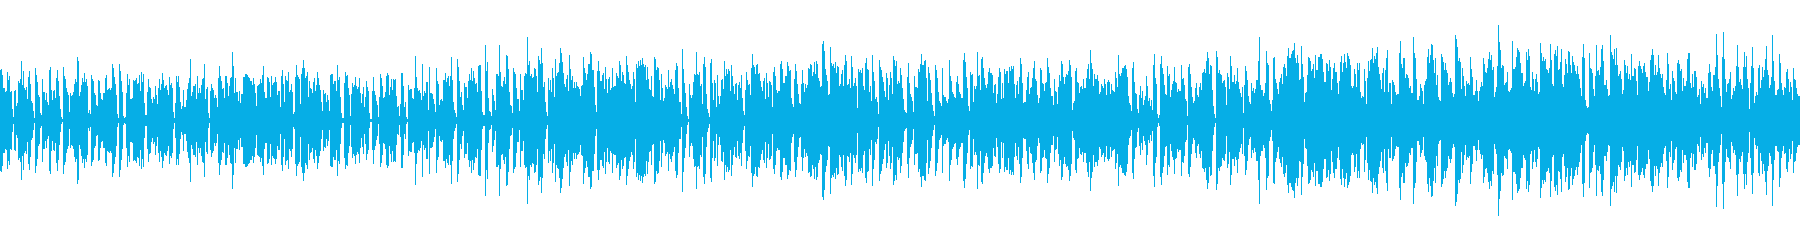 Village in a different world (loop specification)'s reproduced waveform